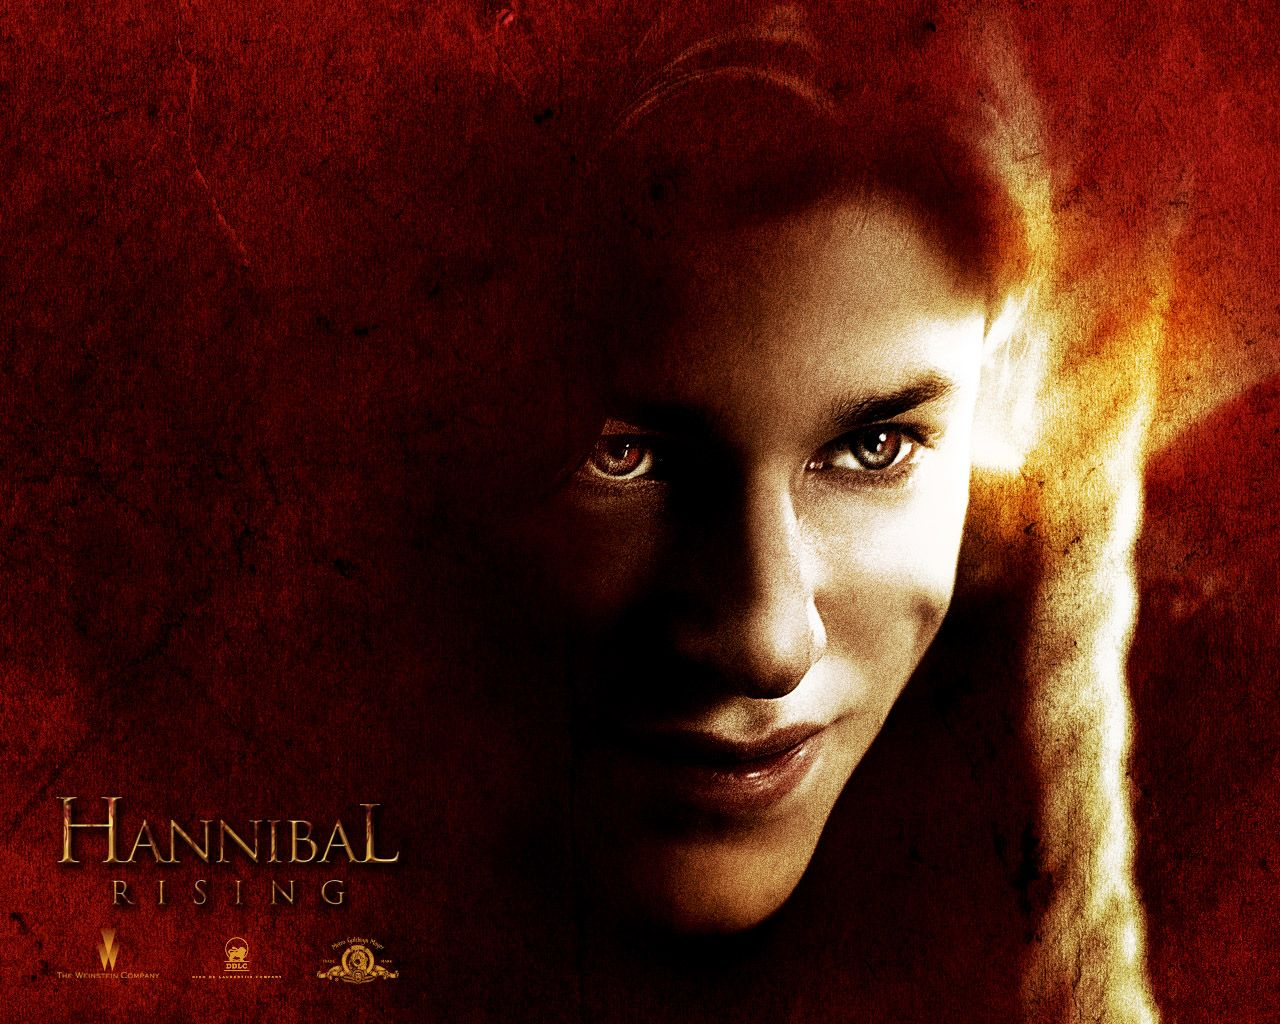 Watch Streaming HD Hannibal Rising, starring Gaspard Ulliel, Rhys Ifans, Li Gong, Aaran Thomas. After the death of his parents during World War II, young Hannibal Lecter moves in with his beautiful aunt and begins plotting revenge on the barbarians responsible for his sister's death. #Crime #Drama #Horror #Thriller http://play.theatrr.com/play.php?movie=0367959